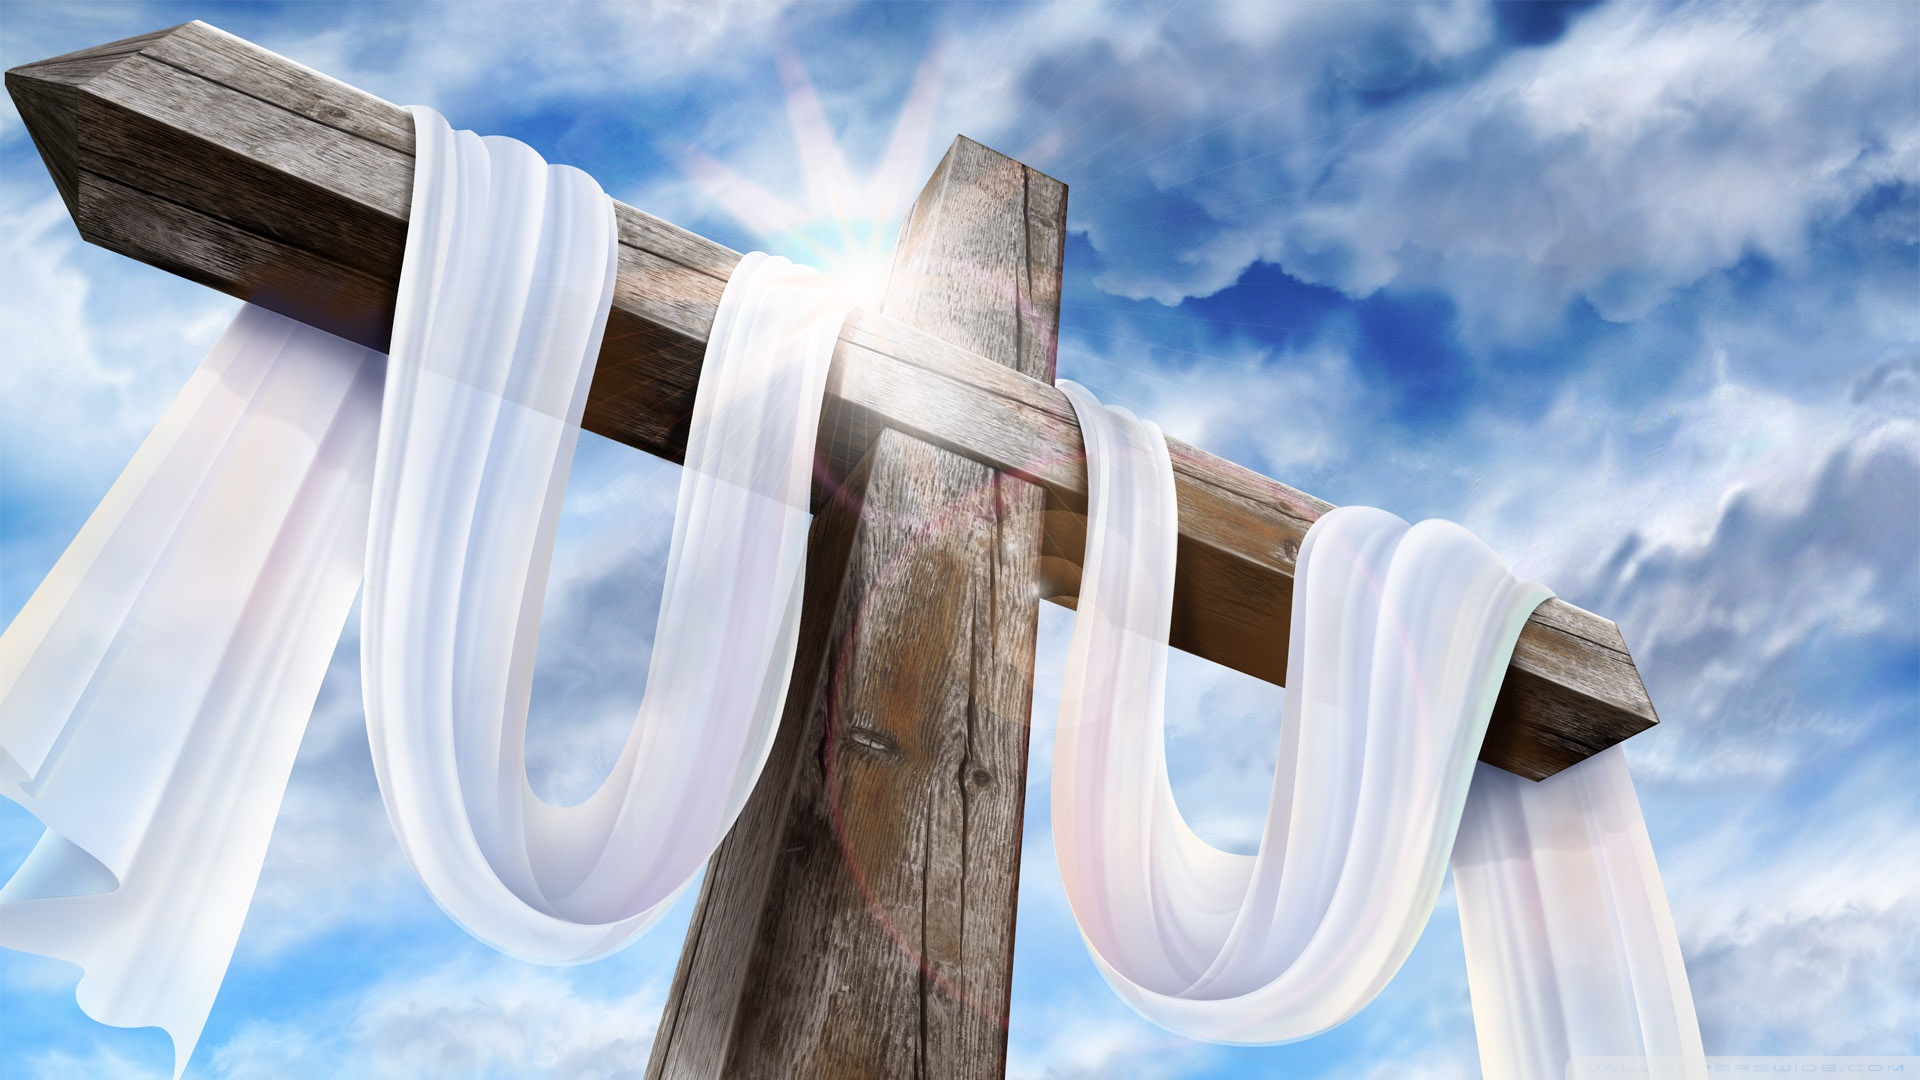 Easter Cross With White Draping Full HD Wallpaper And Hintergrund